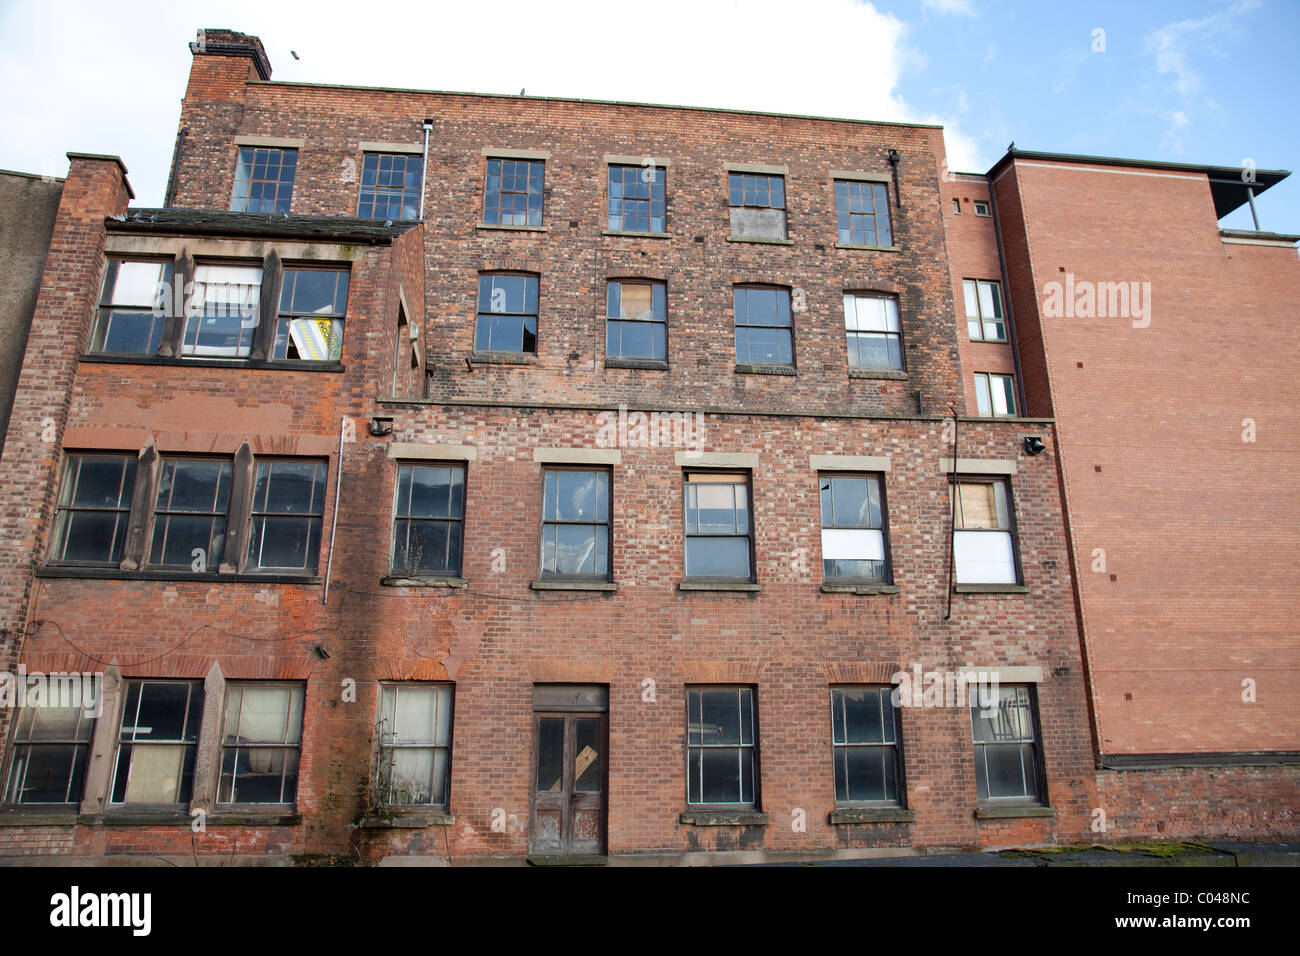 abandoned derelict office buildings in an urban area in nottingham